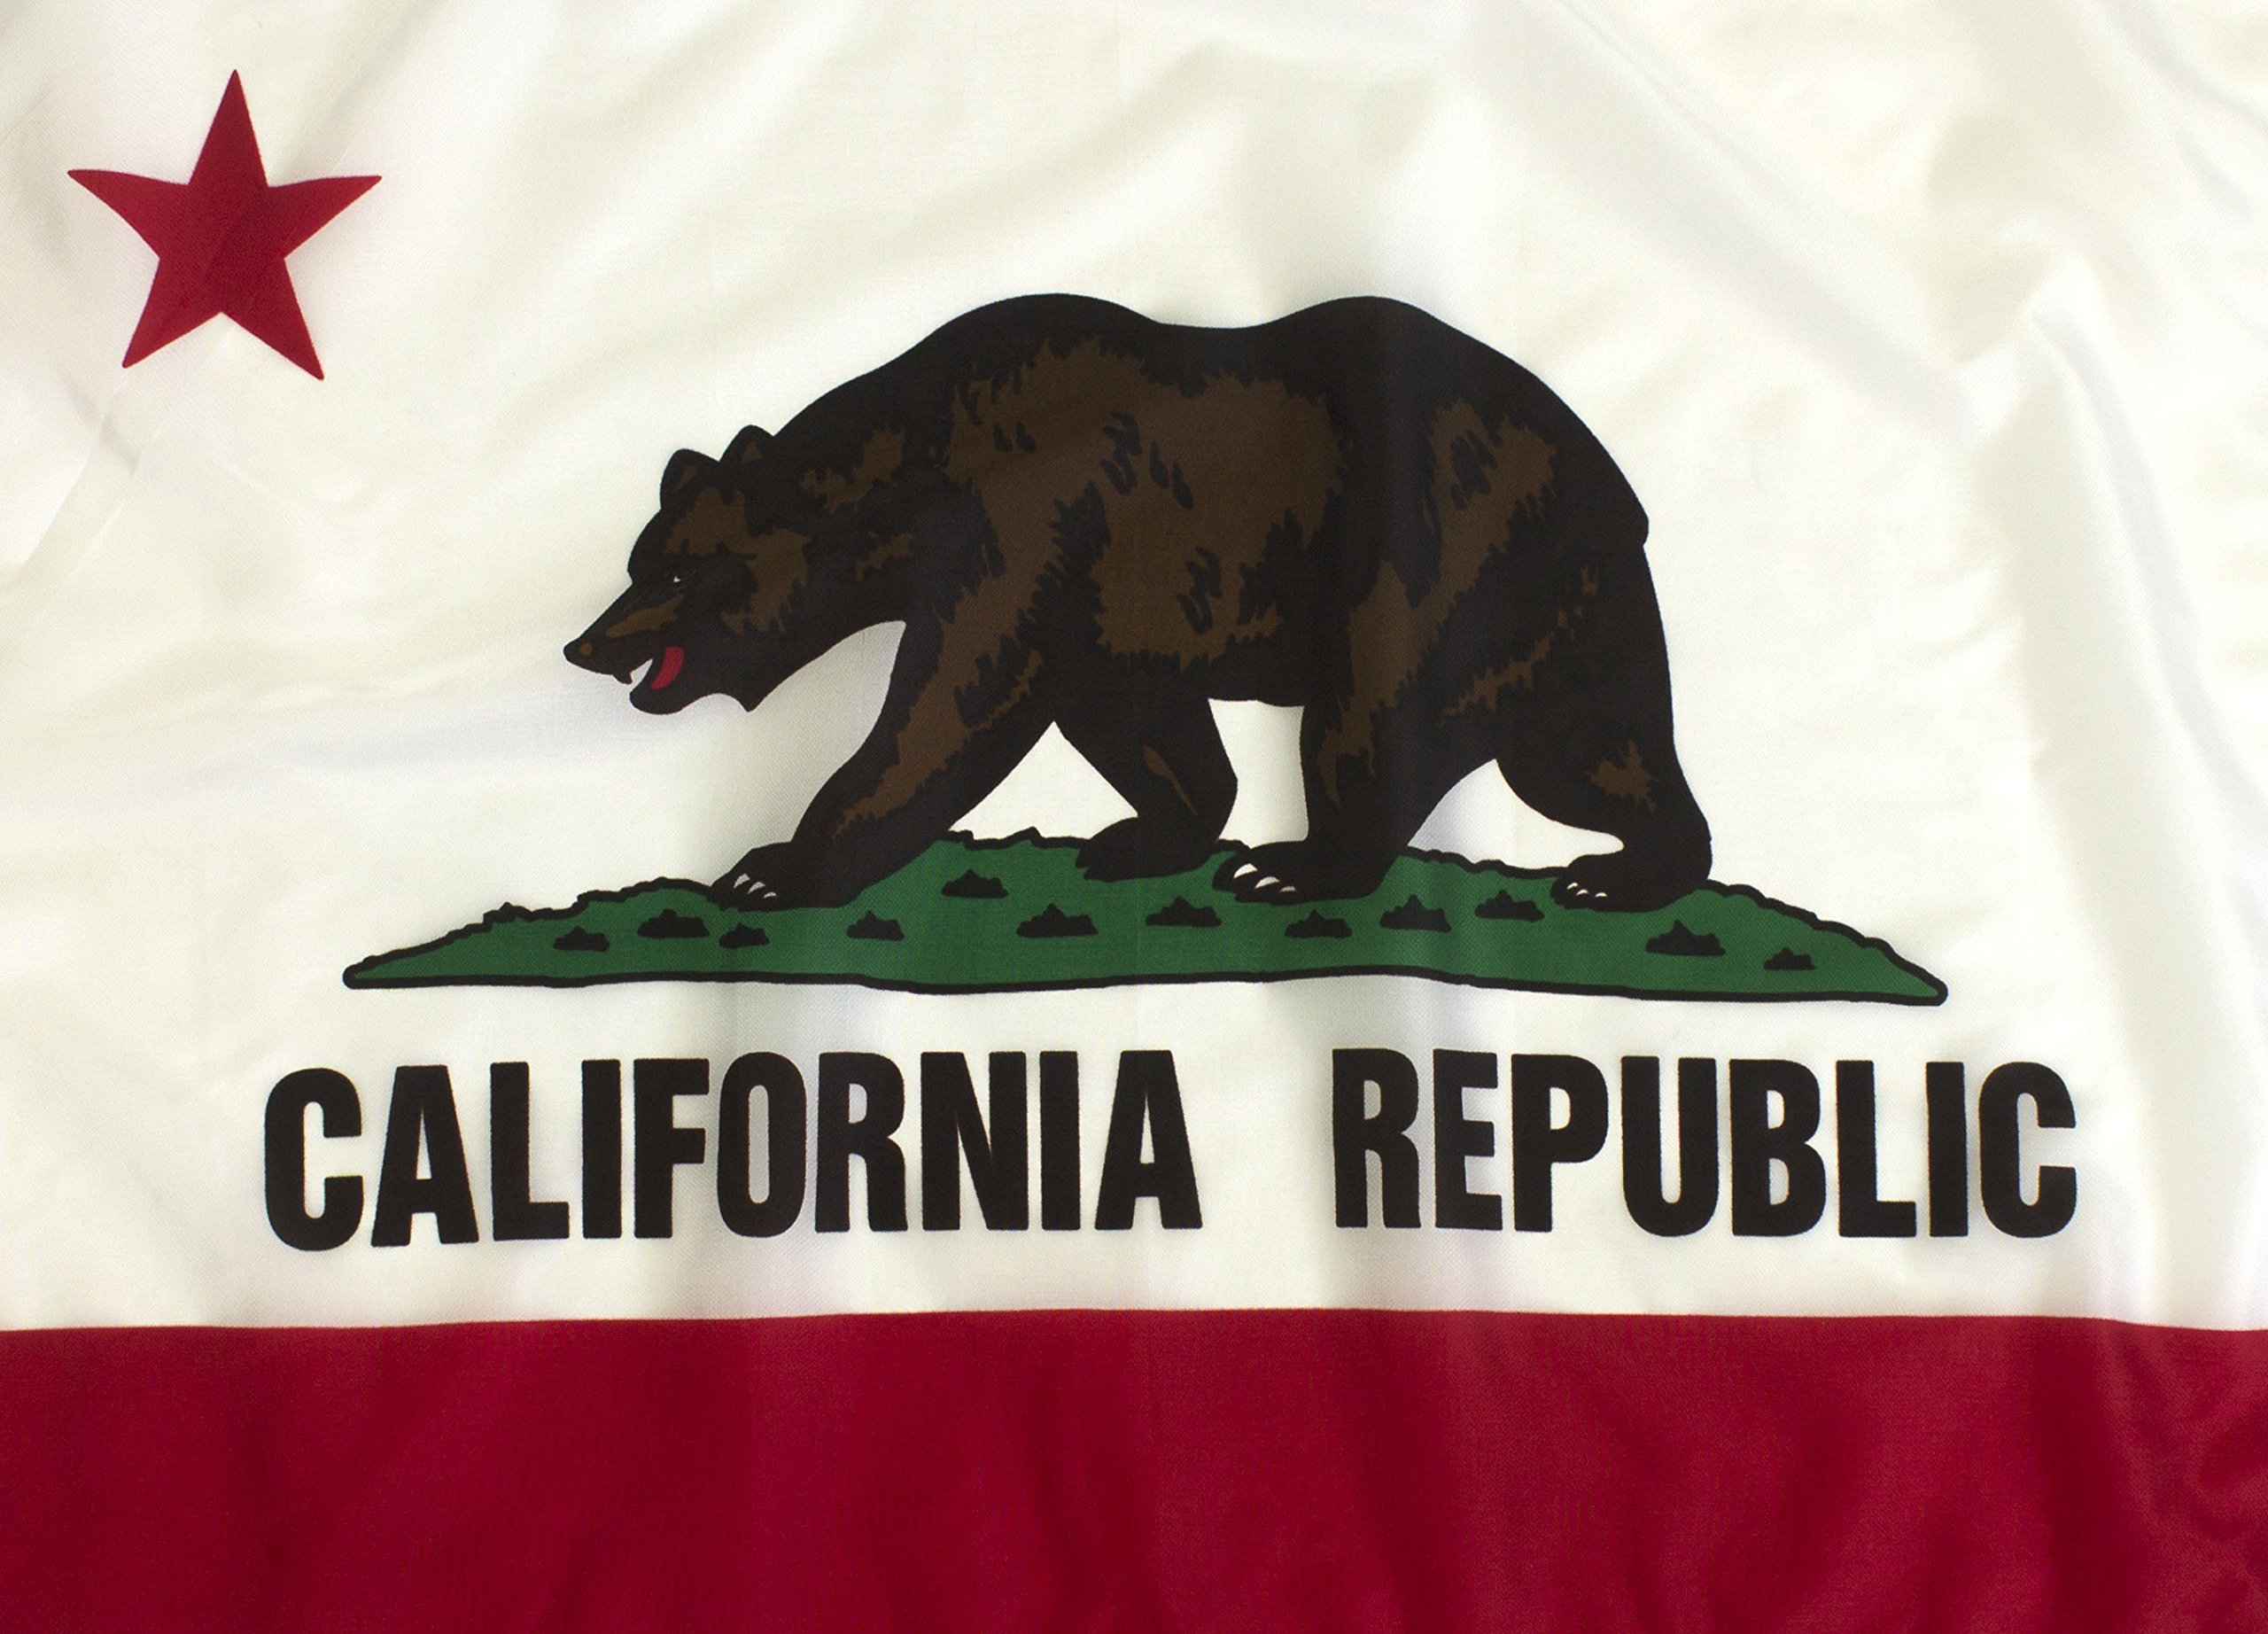 Premium Quality, State of California Flag (6'x10') by Federal Flags